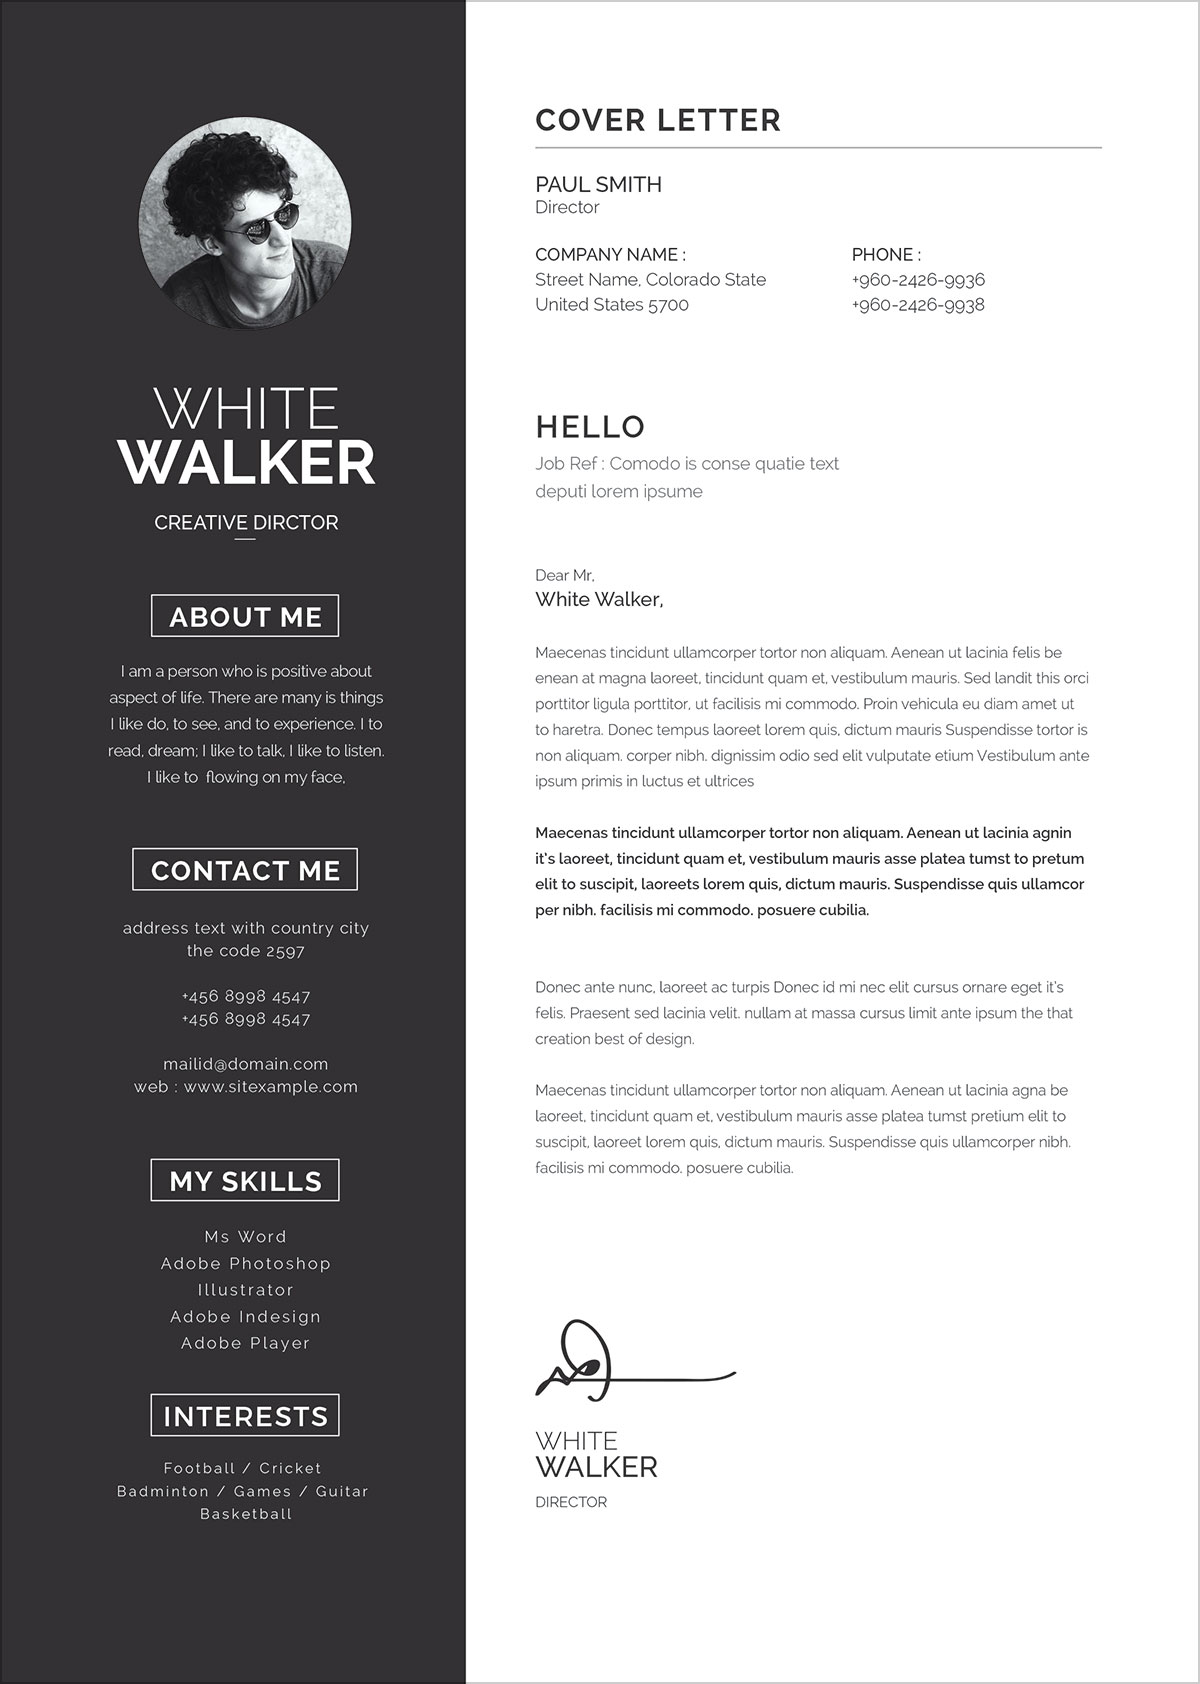 What Size Font Should A Resume Be Typed In Free Clean Resume Template And Cover Letter In Word Psd